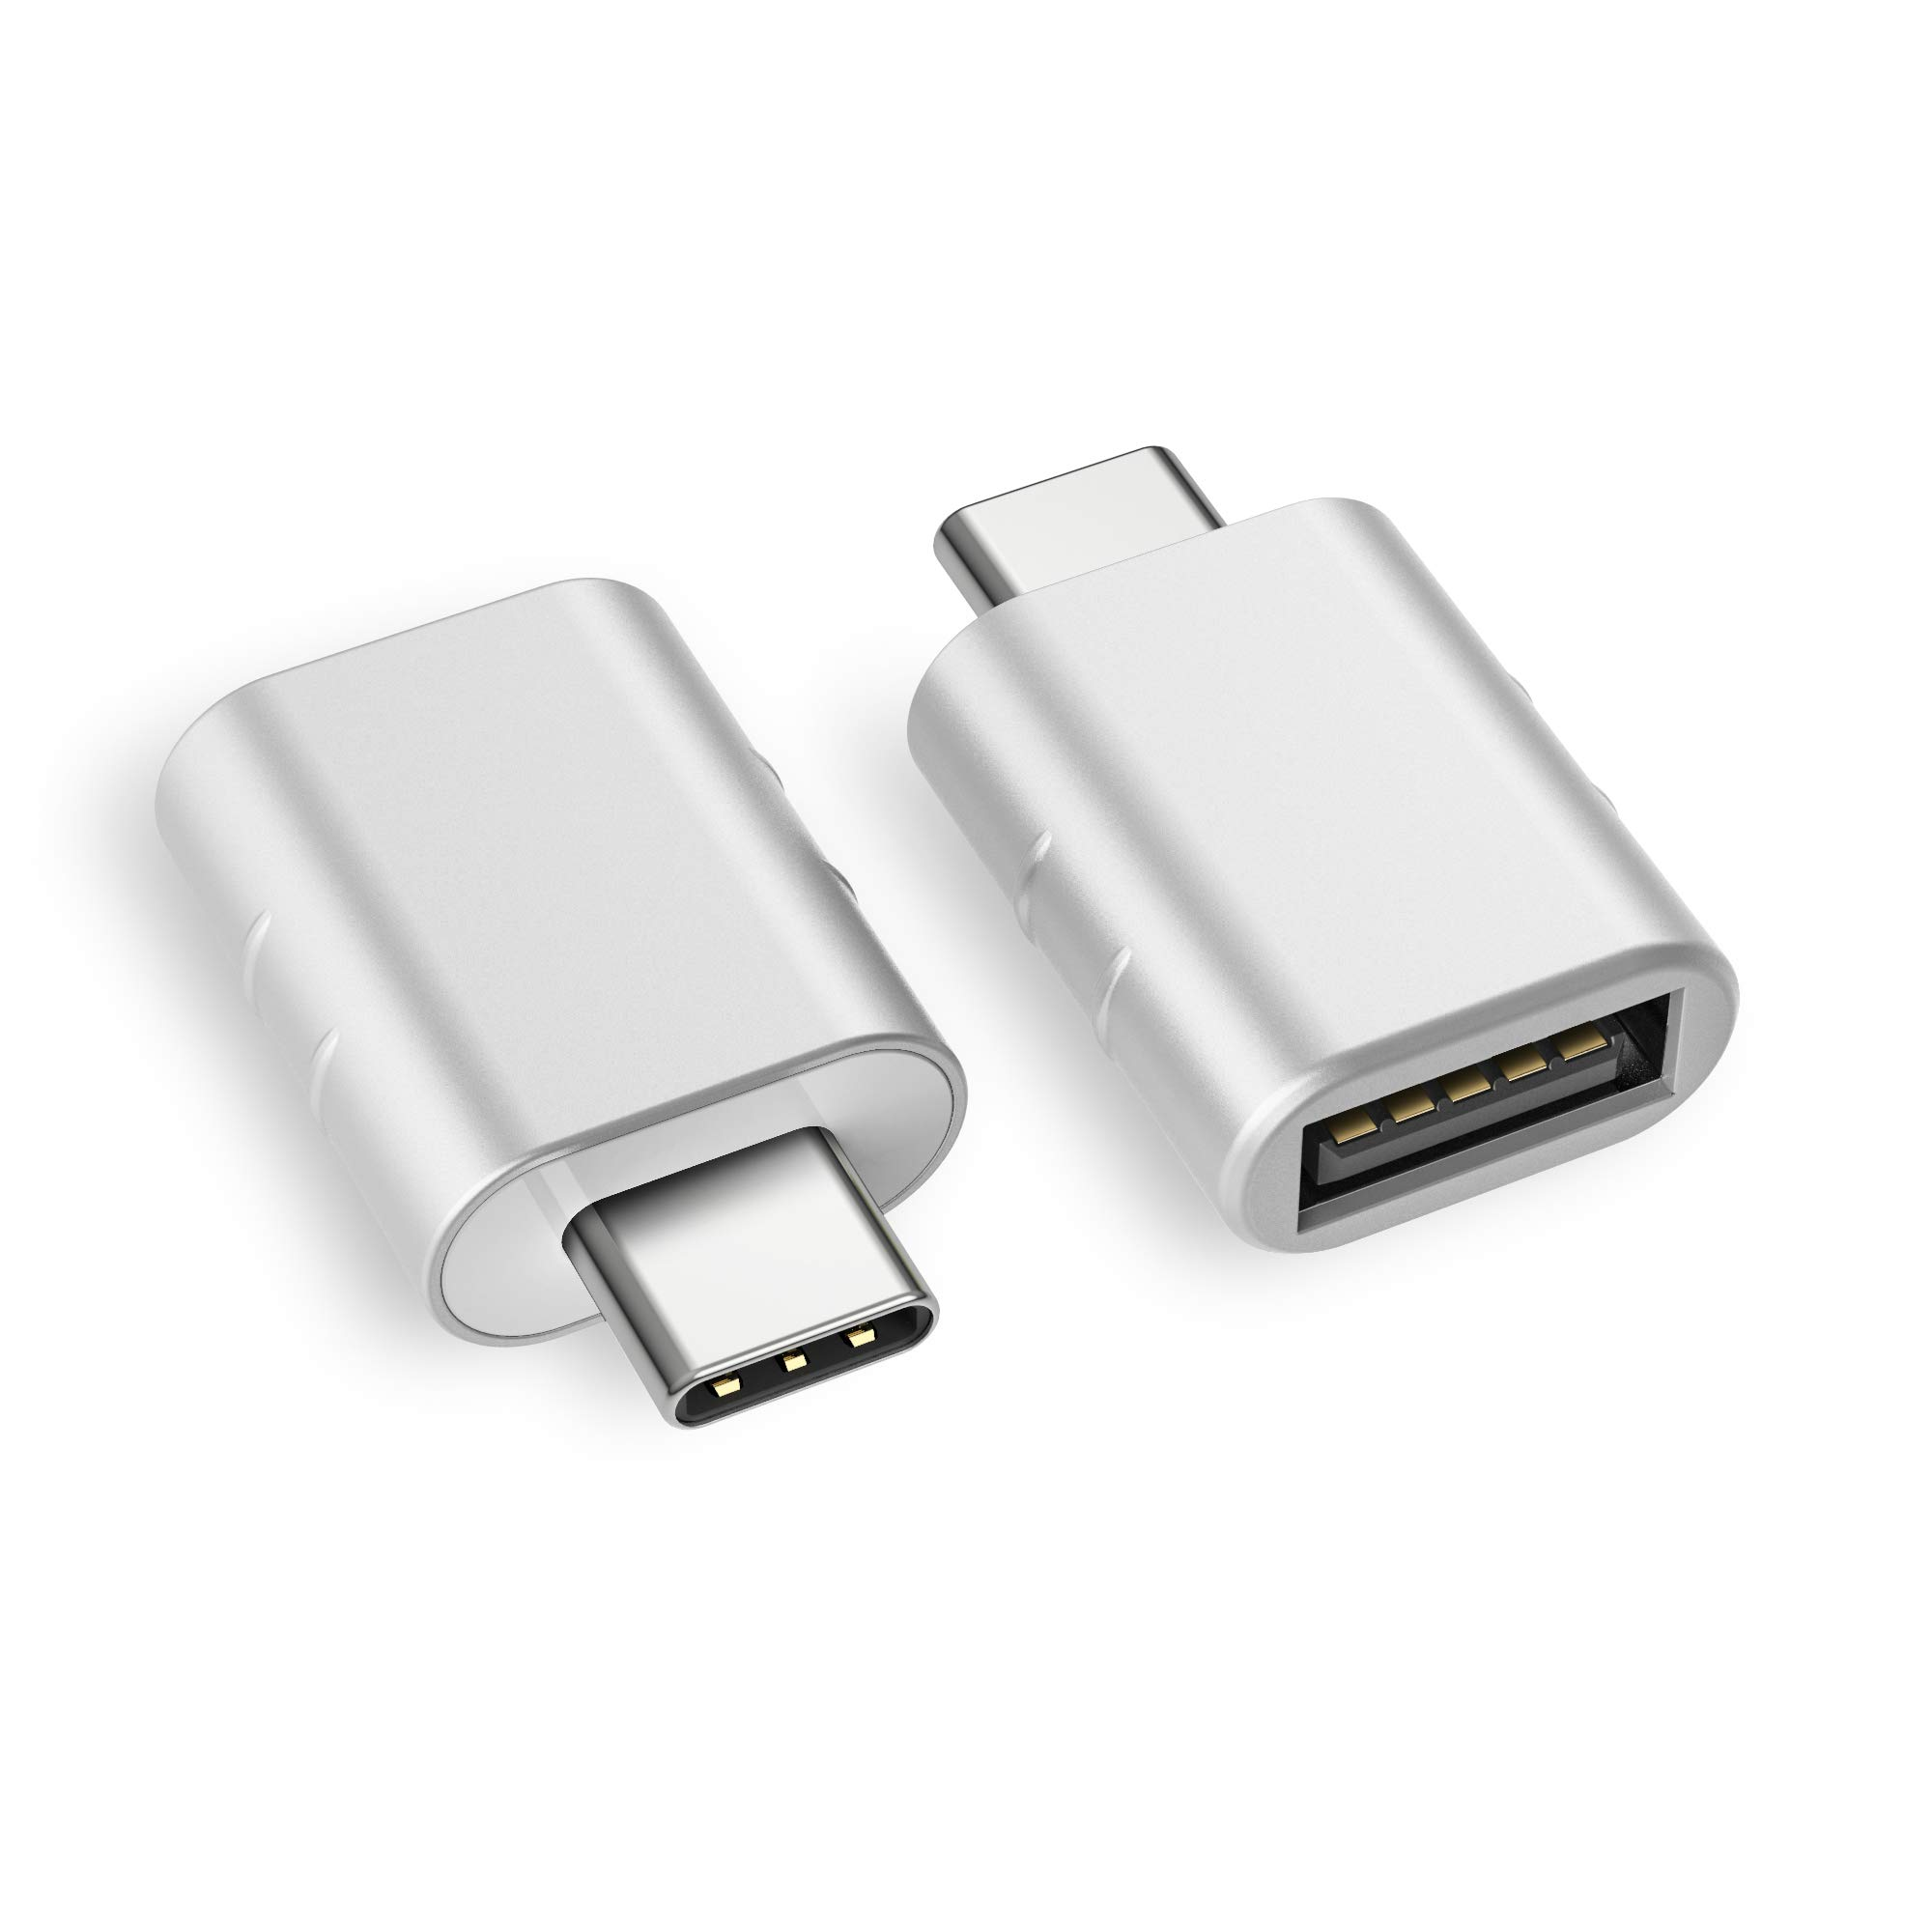 Syntech USB C to USB Adapter (2 Pack), Thunderbolt 3 to USB 3.0 Adapter Compatible with MacBook Pro 2019 and Before, MacBook Air 2019/2018, Dell XPS and More Type C Devices, Silver by Syntech